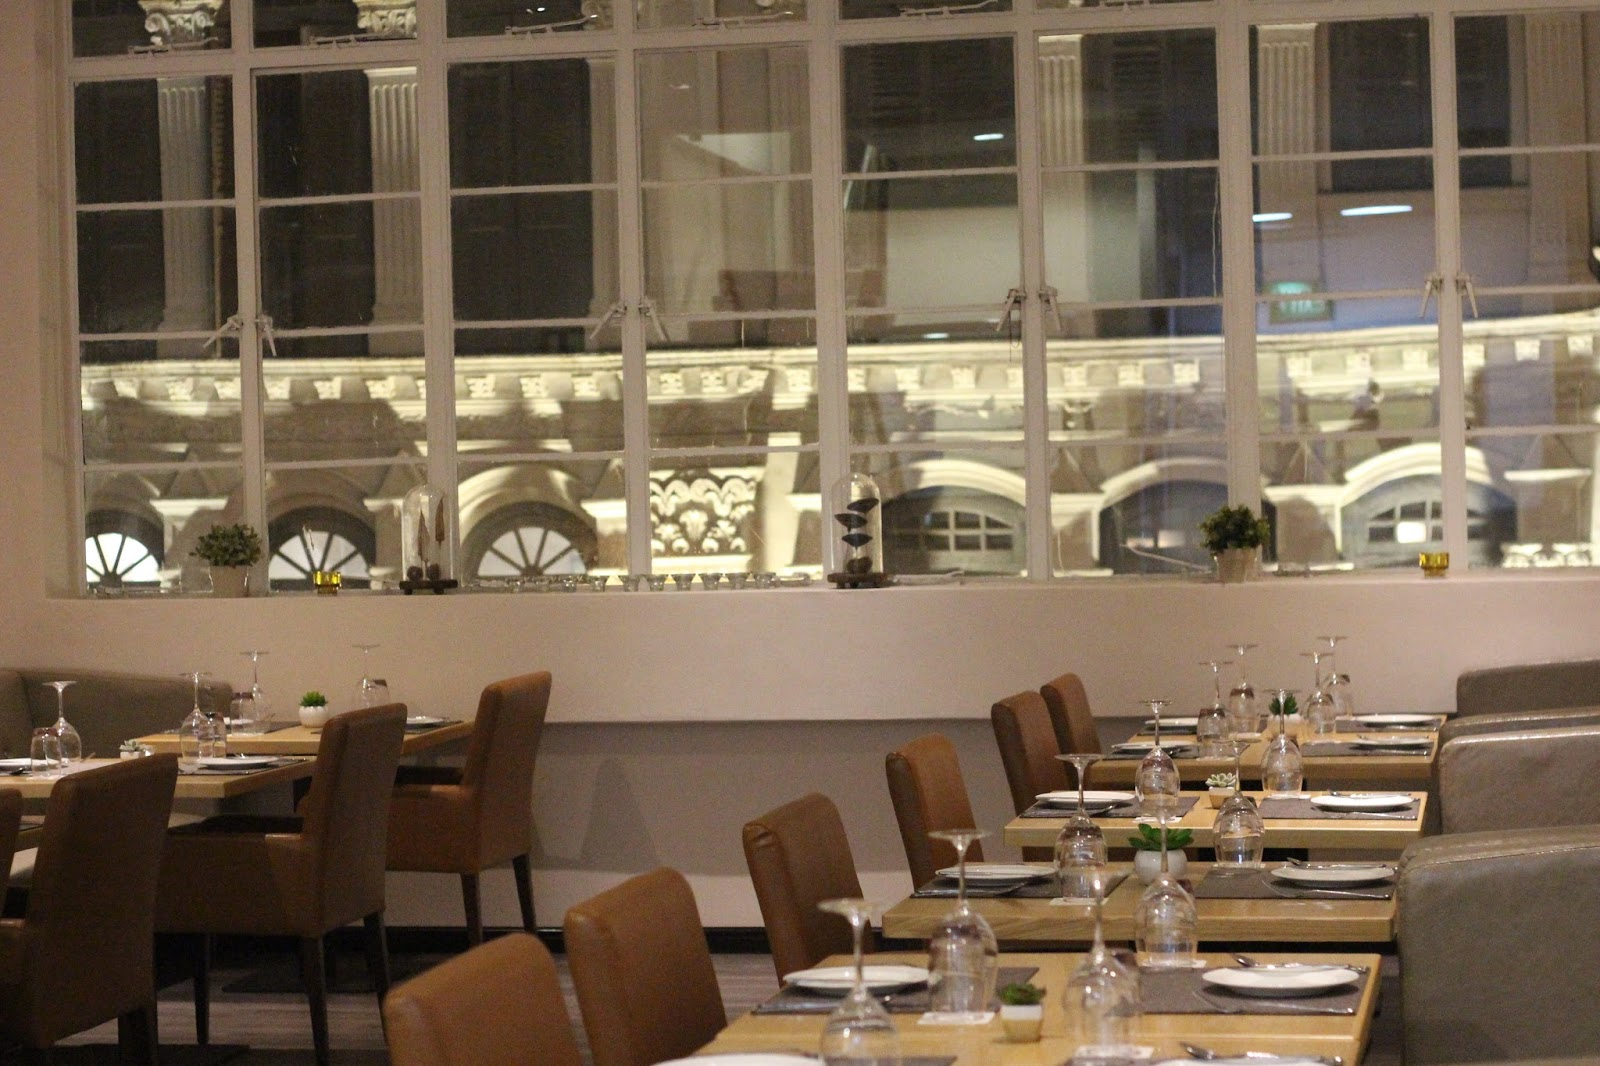 violet herbs houses a 2 storey 70 seater restaurant where the interior design surrounds the theme of comfort and elegance